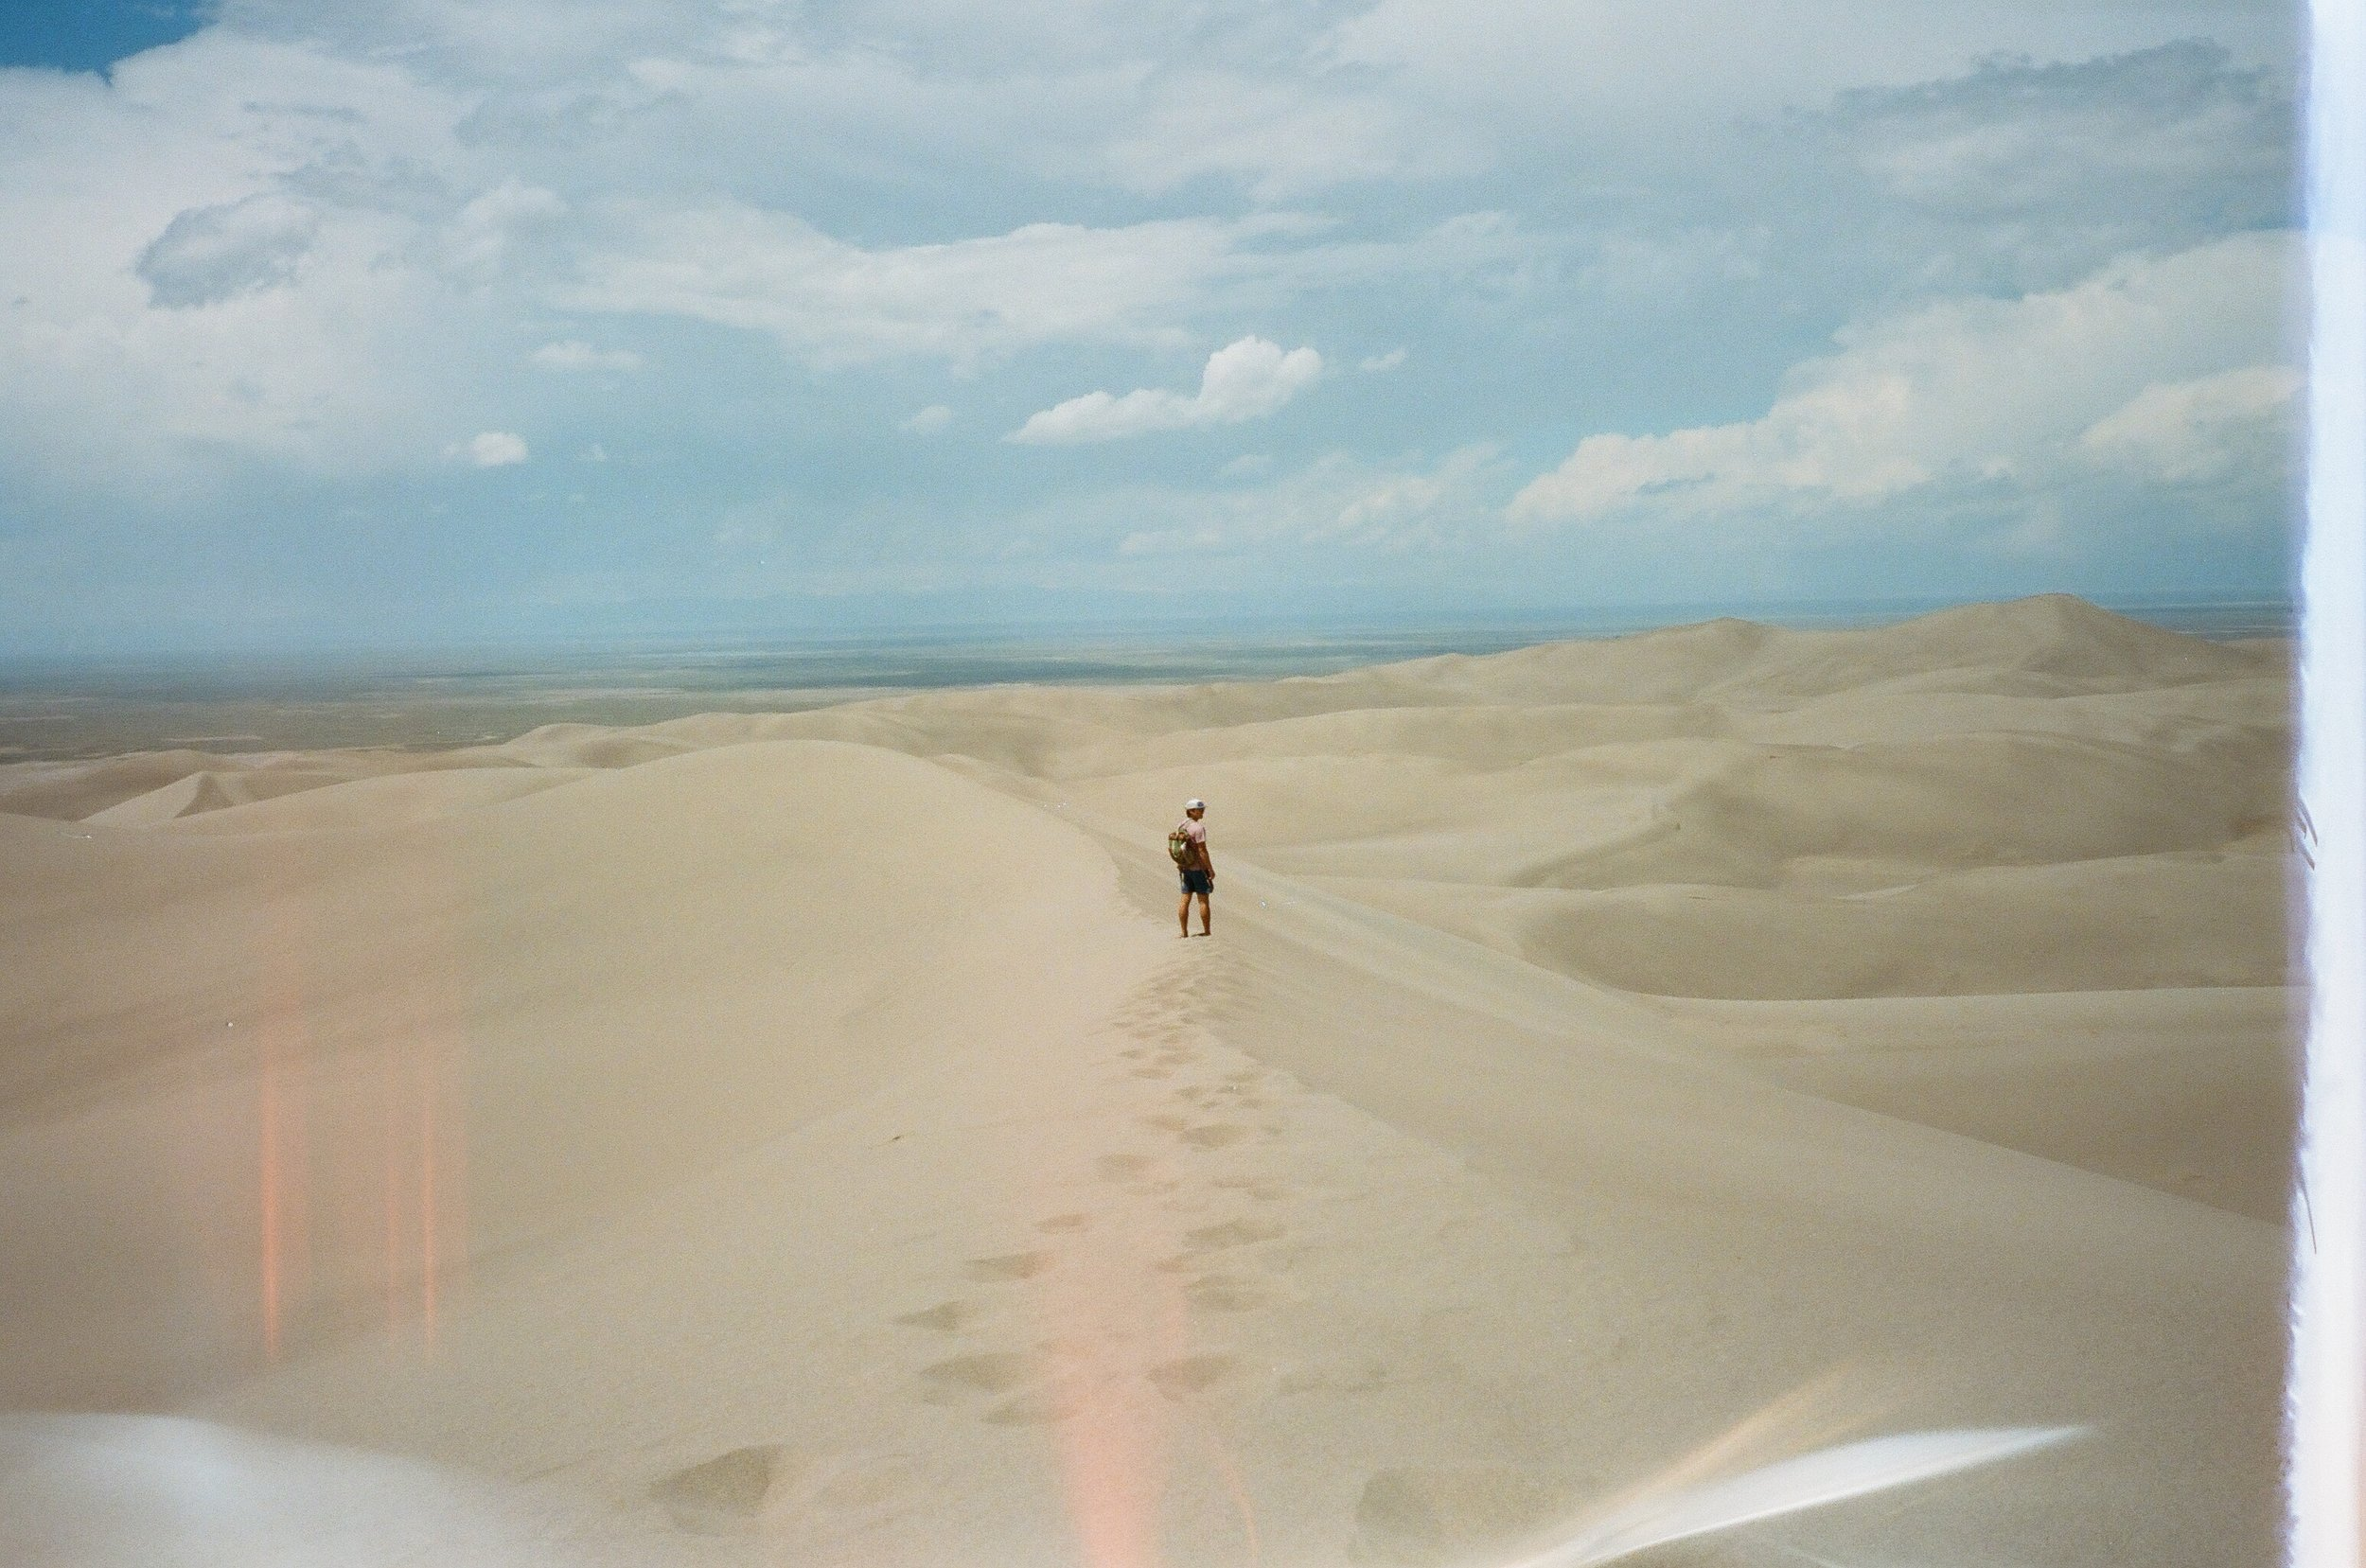 Owen at Great Sand Dunes NP, 35mm